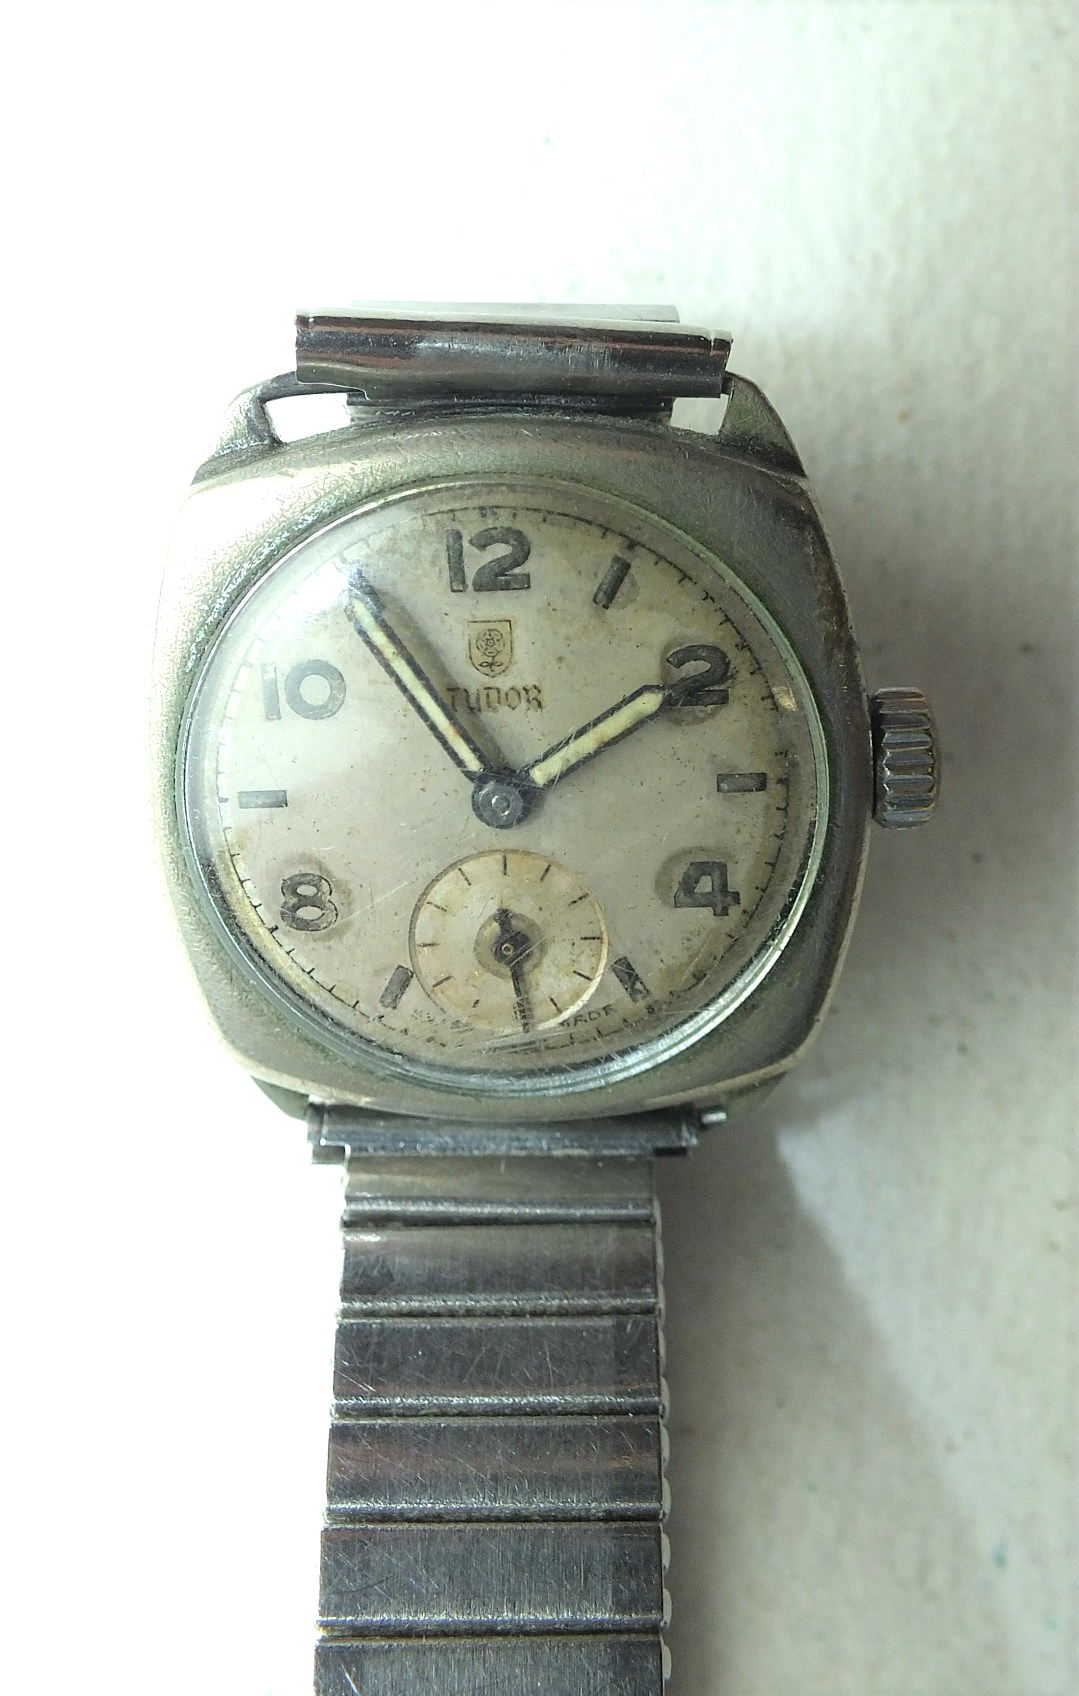 A vintage Tudor cushion-cased wrist watch, the silvered dial with Arabic and baton numerals and